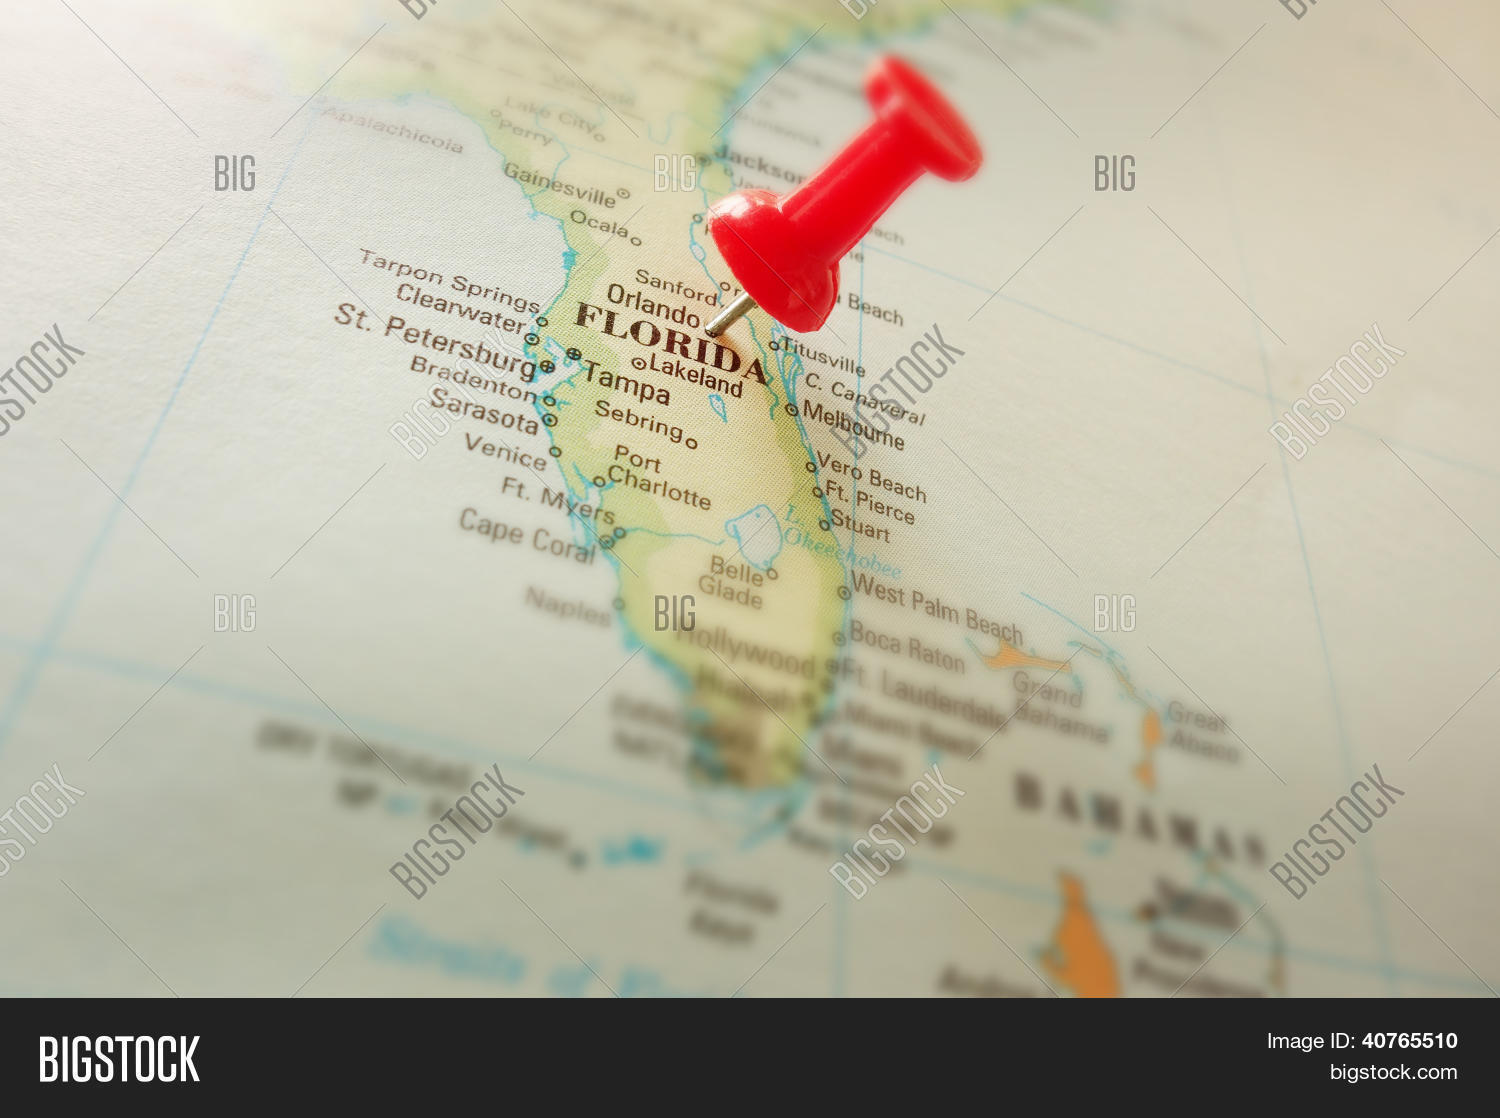 Florida Map Fort Myers.Florida Map Image Photo Free Trial Bigstock